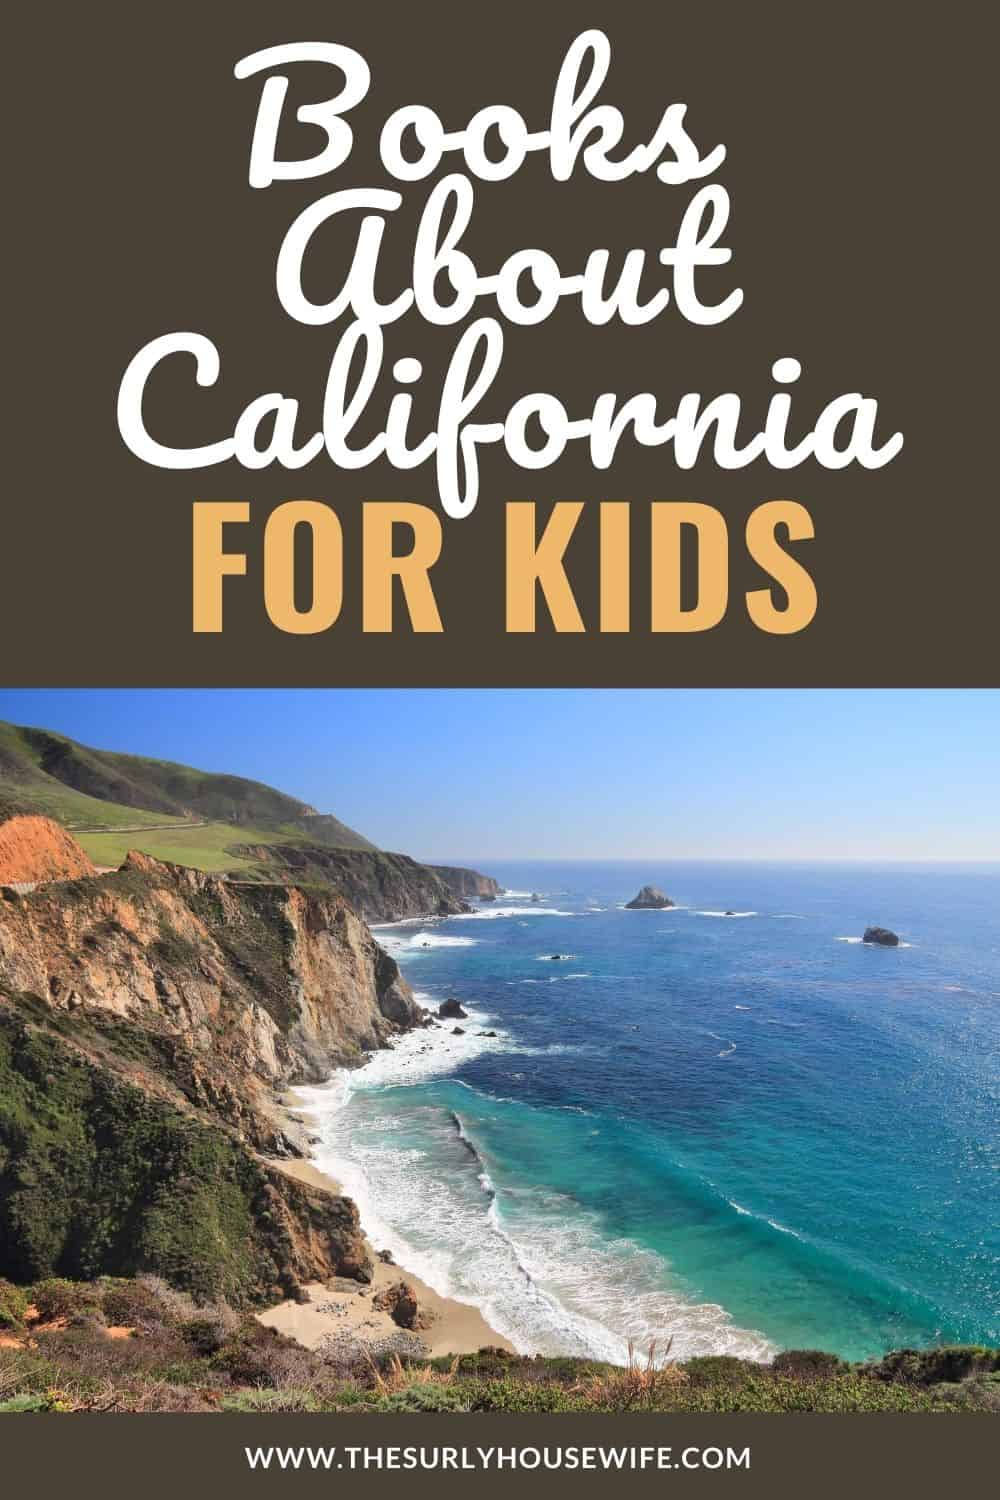 Need children's books about California? This book list includes picture books about California as well as chapter books set in California